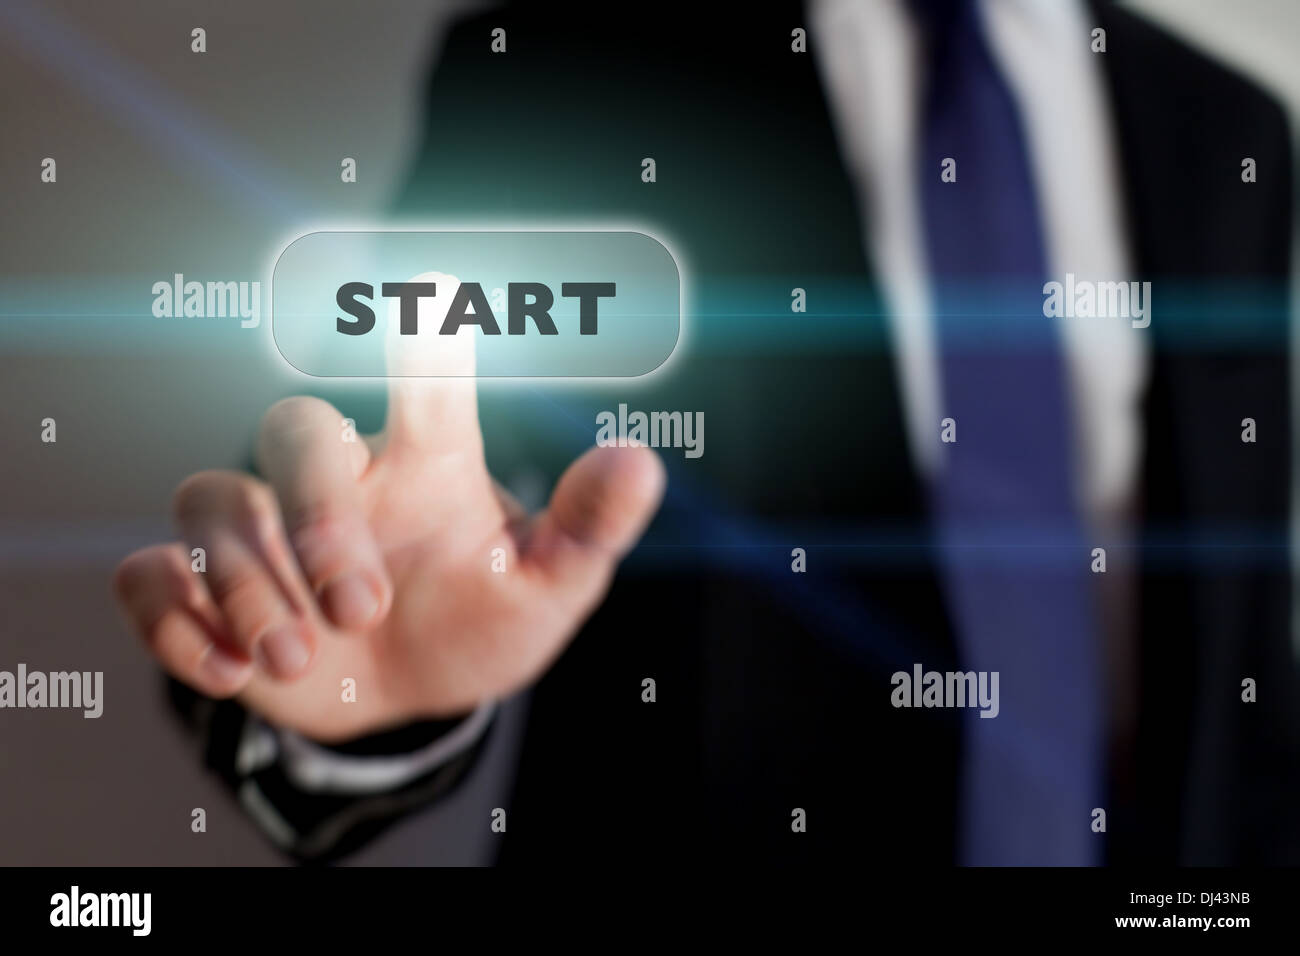 start new business, concept - Stock Image